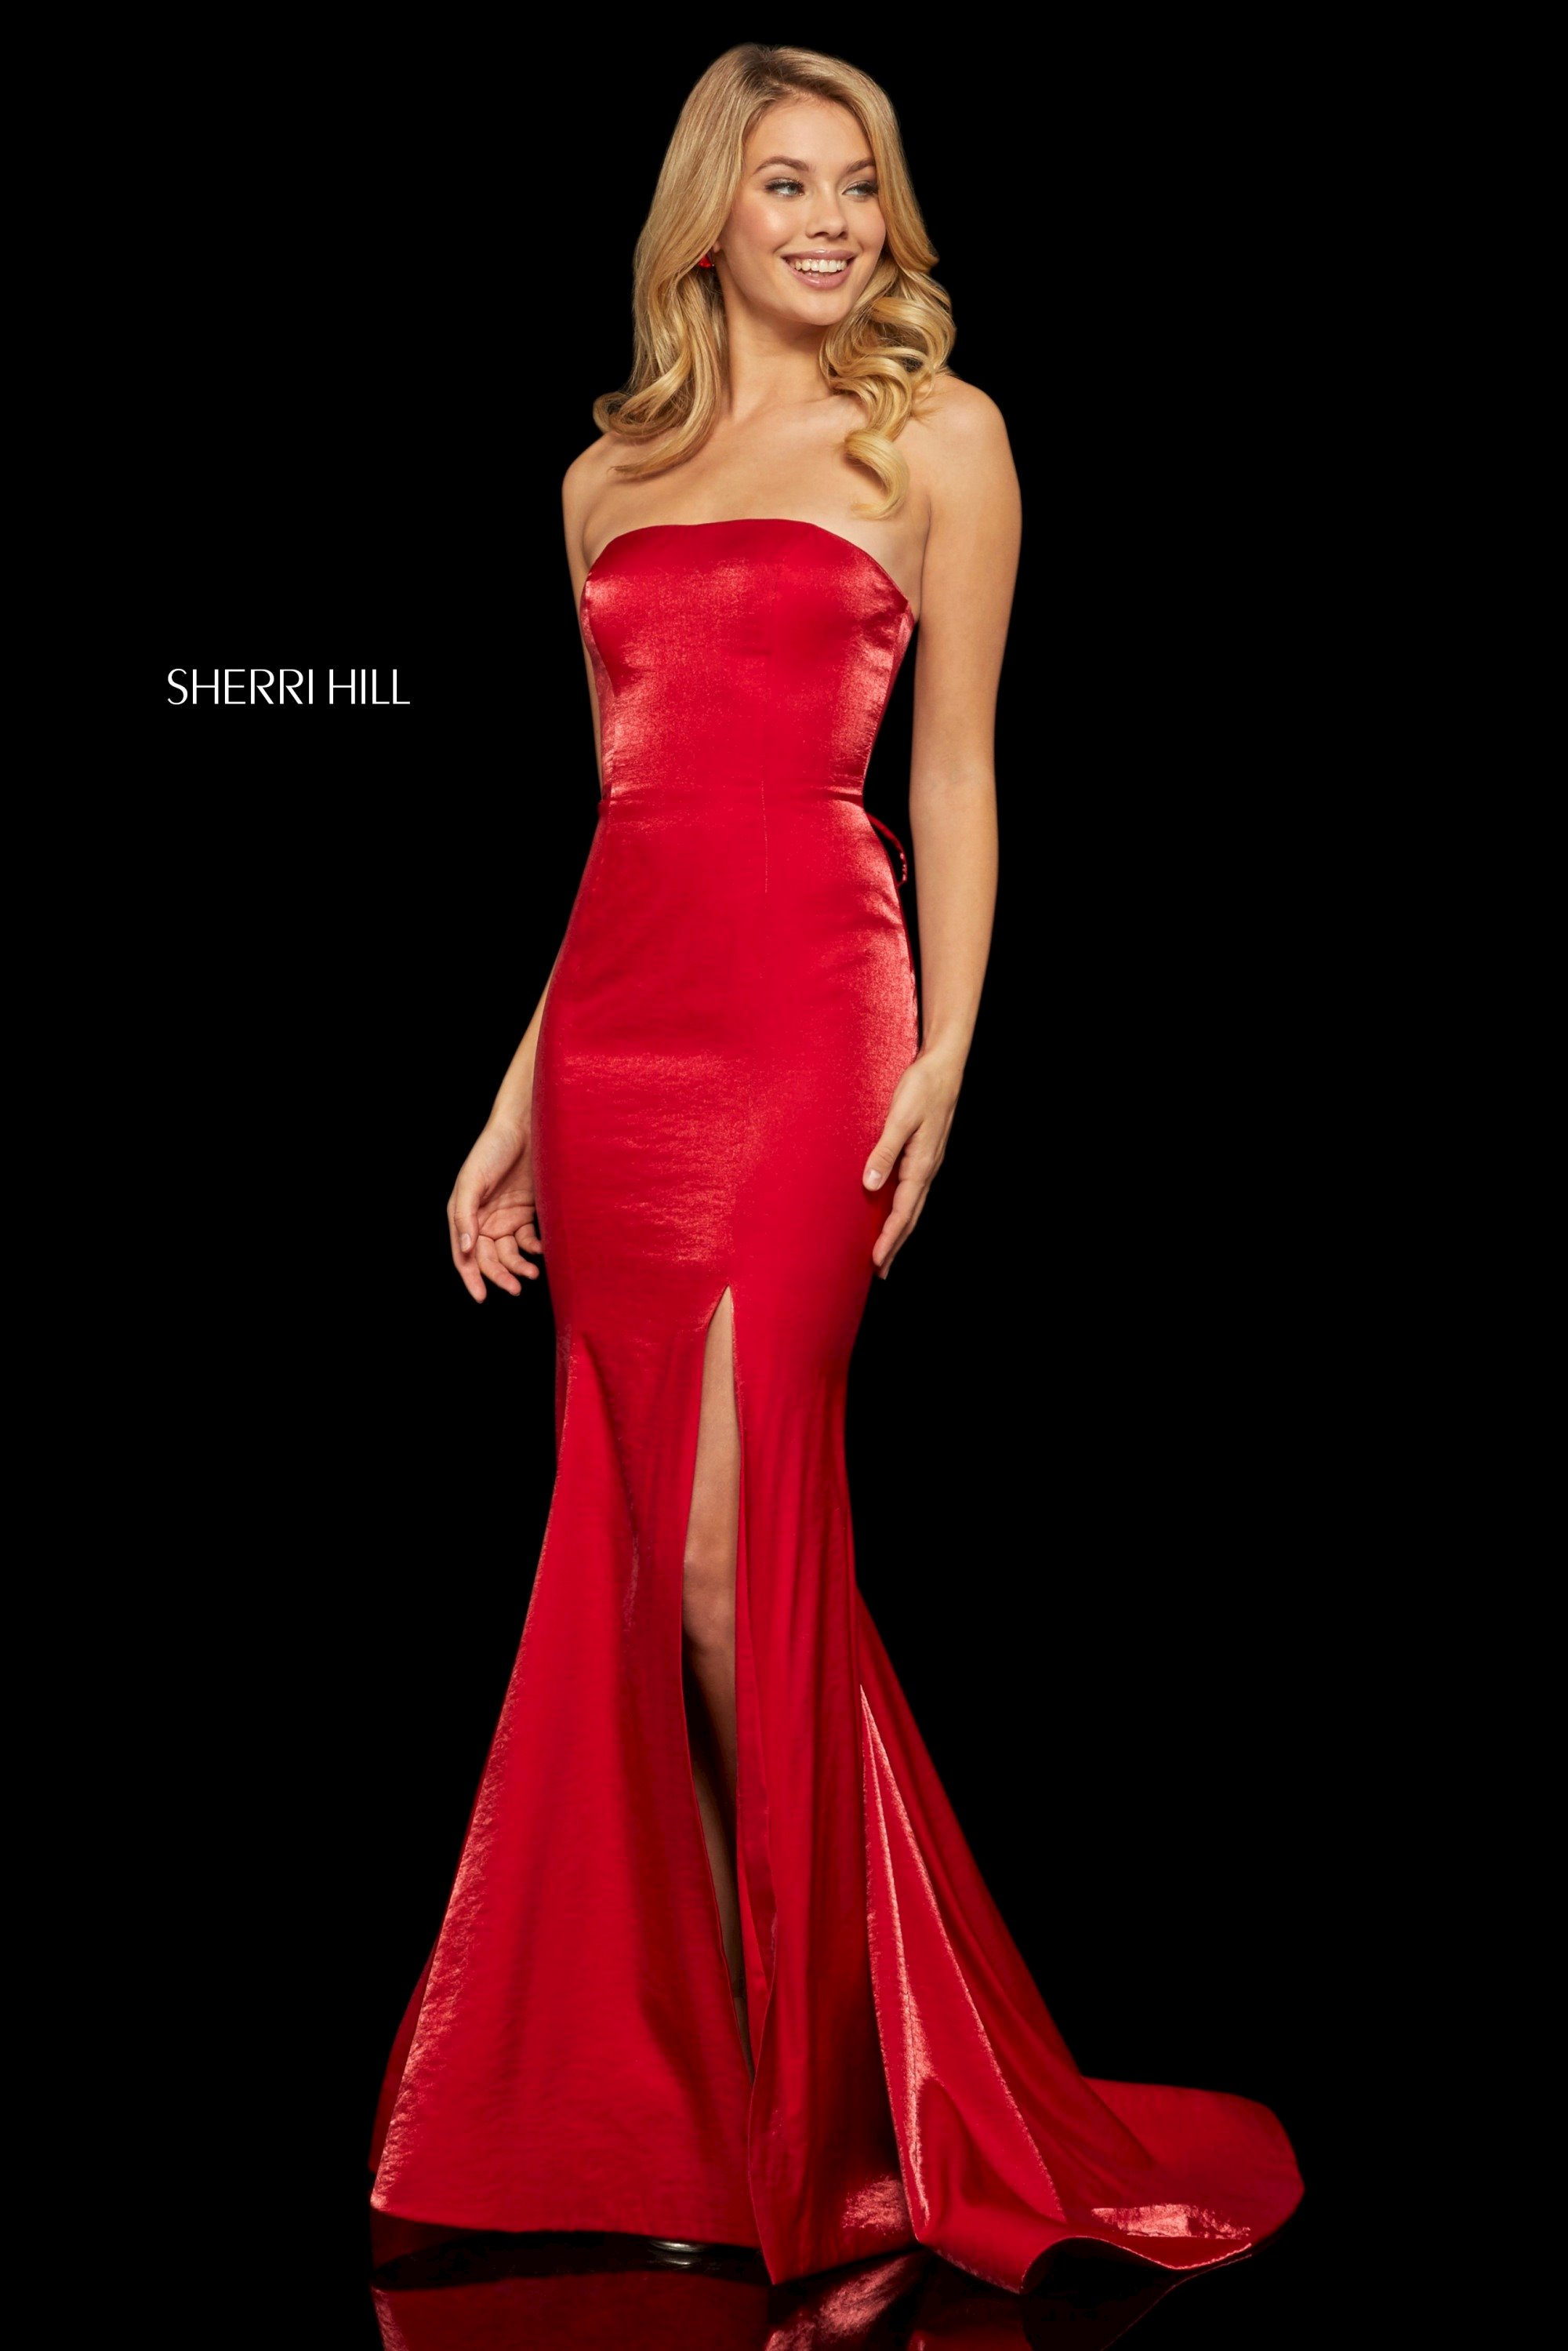 dcbbbb0040 Sherri Hill 52961. Double tap to zoom